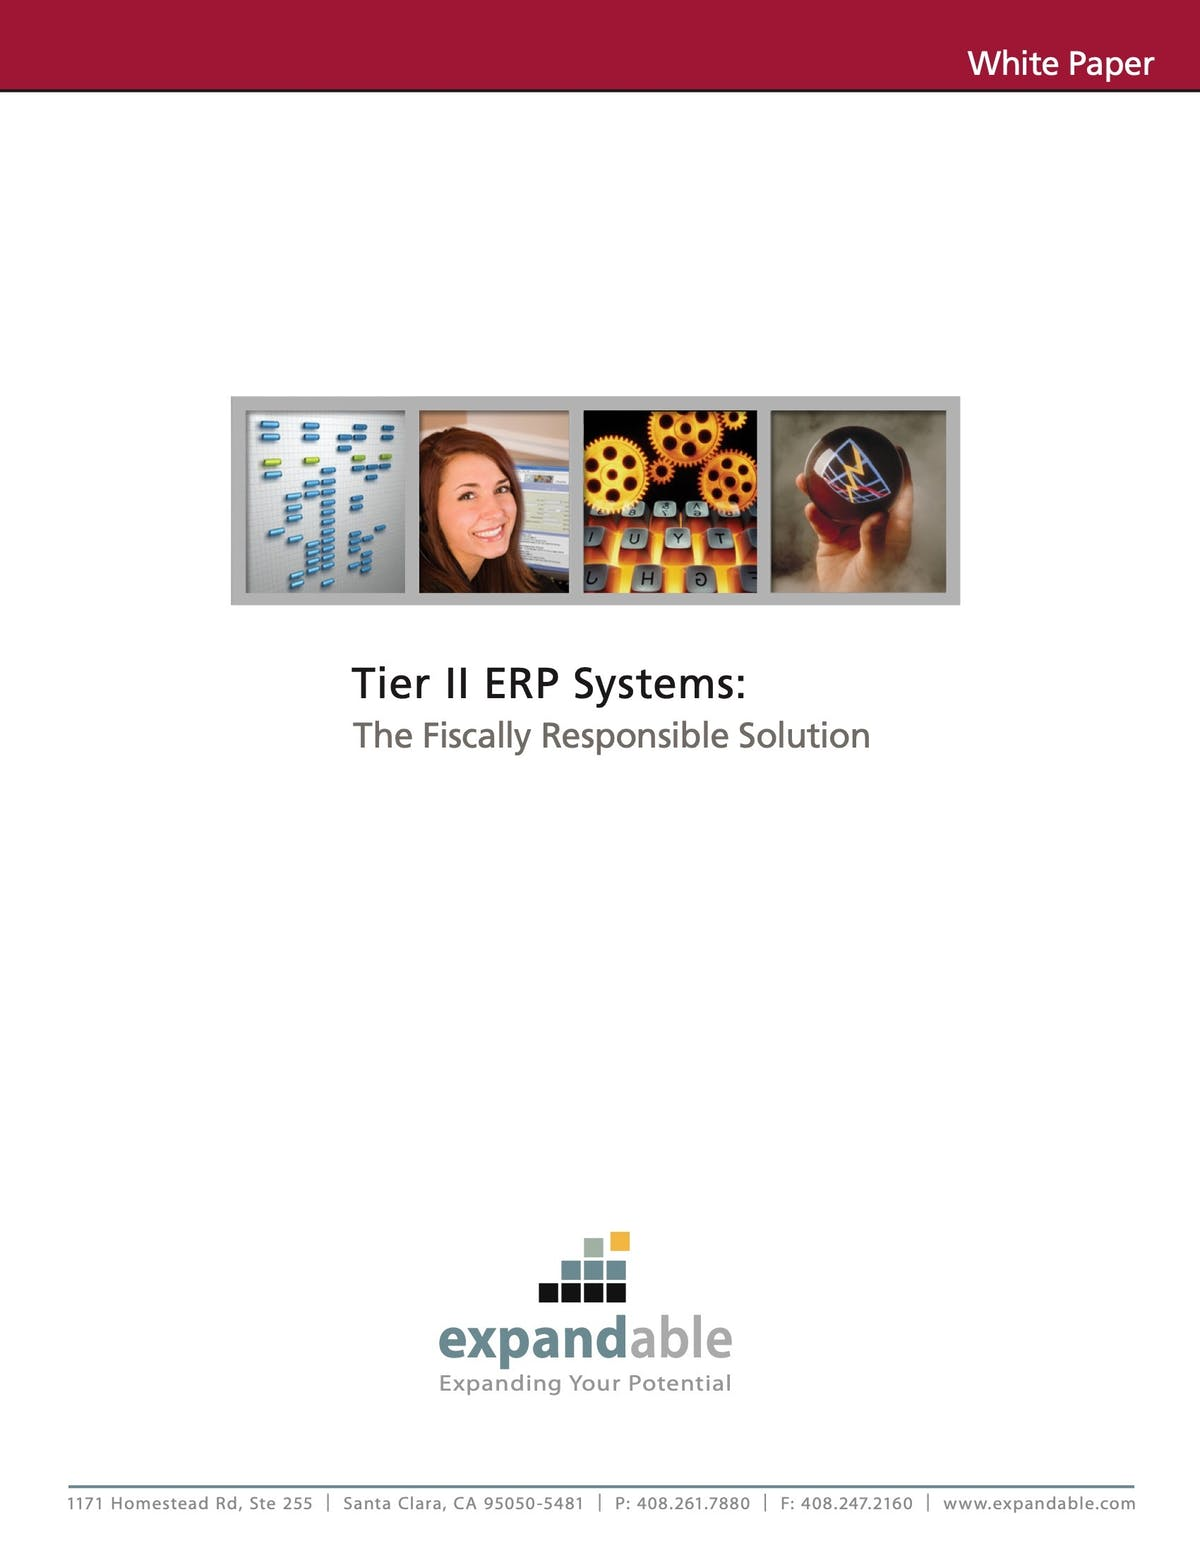 Expandable ERP White Paper - Tier II ERP Systems: The Fiscally Responsible Solution